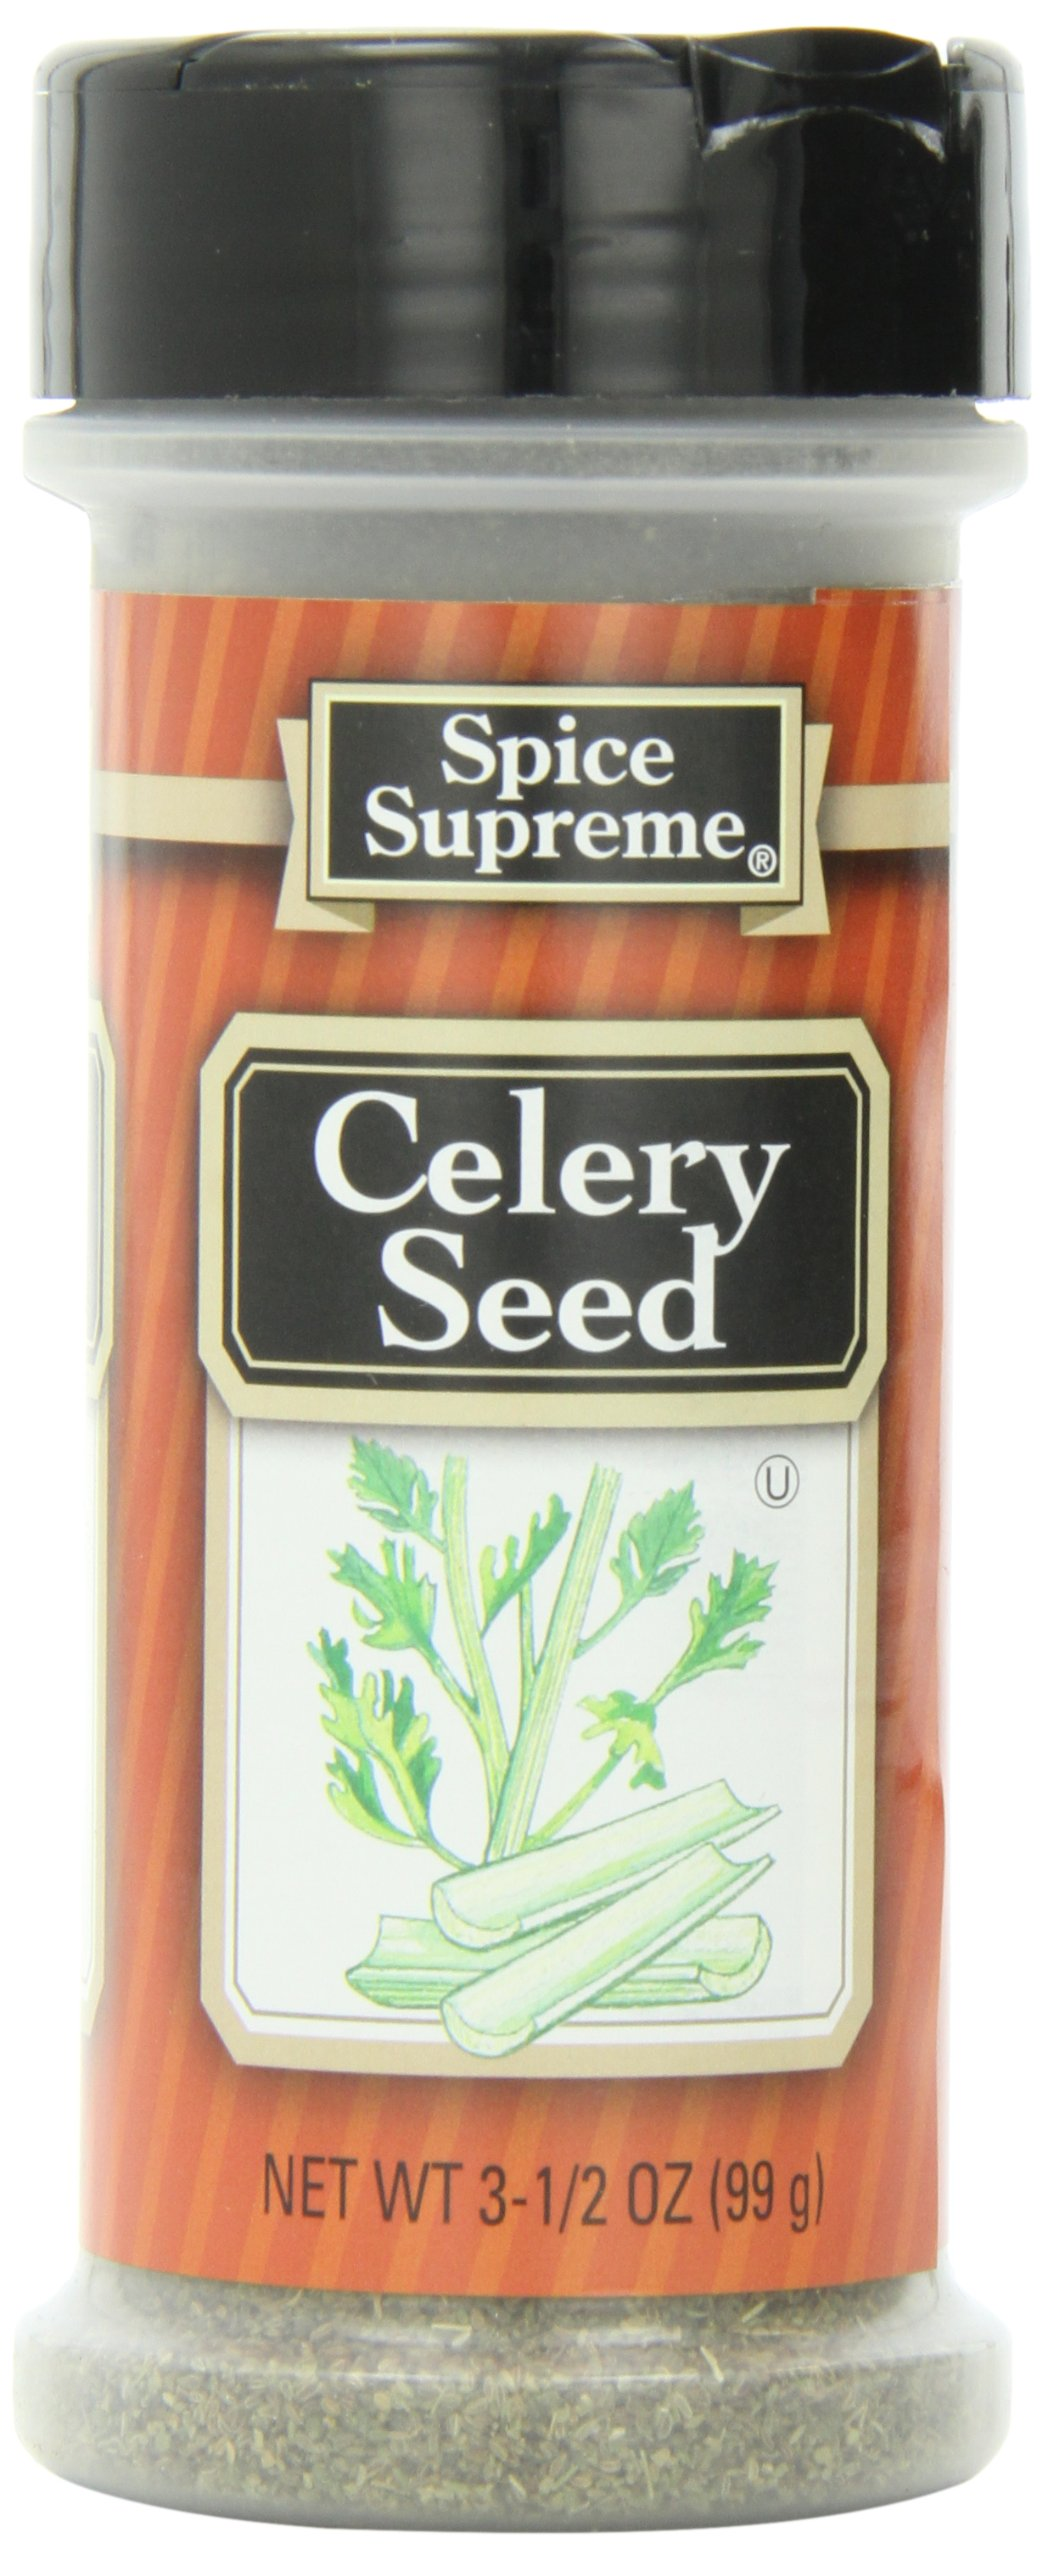 Spice Supreme Celery Seed, Whole, 3.5-Ounce (Pack of 12) by Spice Supreme (Image #1)